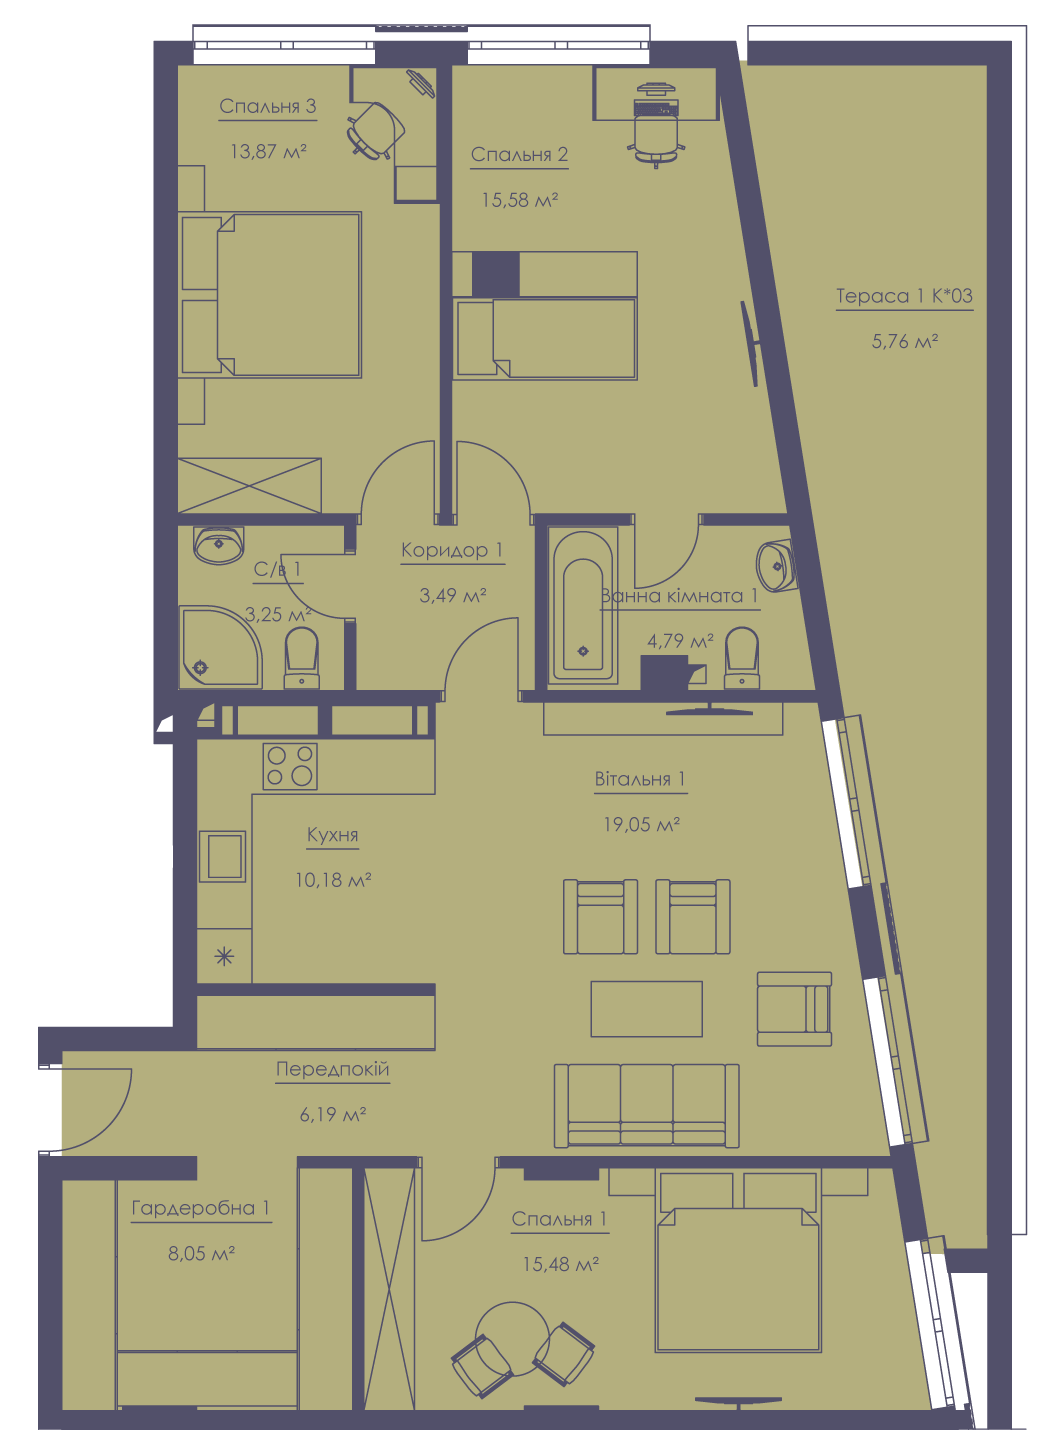 Apartment layout KV_23_1.4g_1_1_11-1